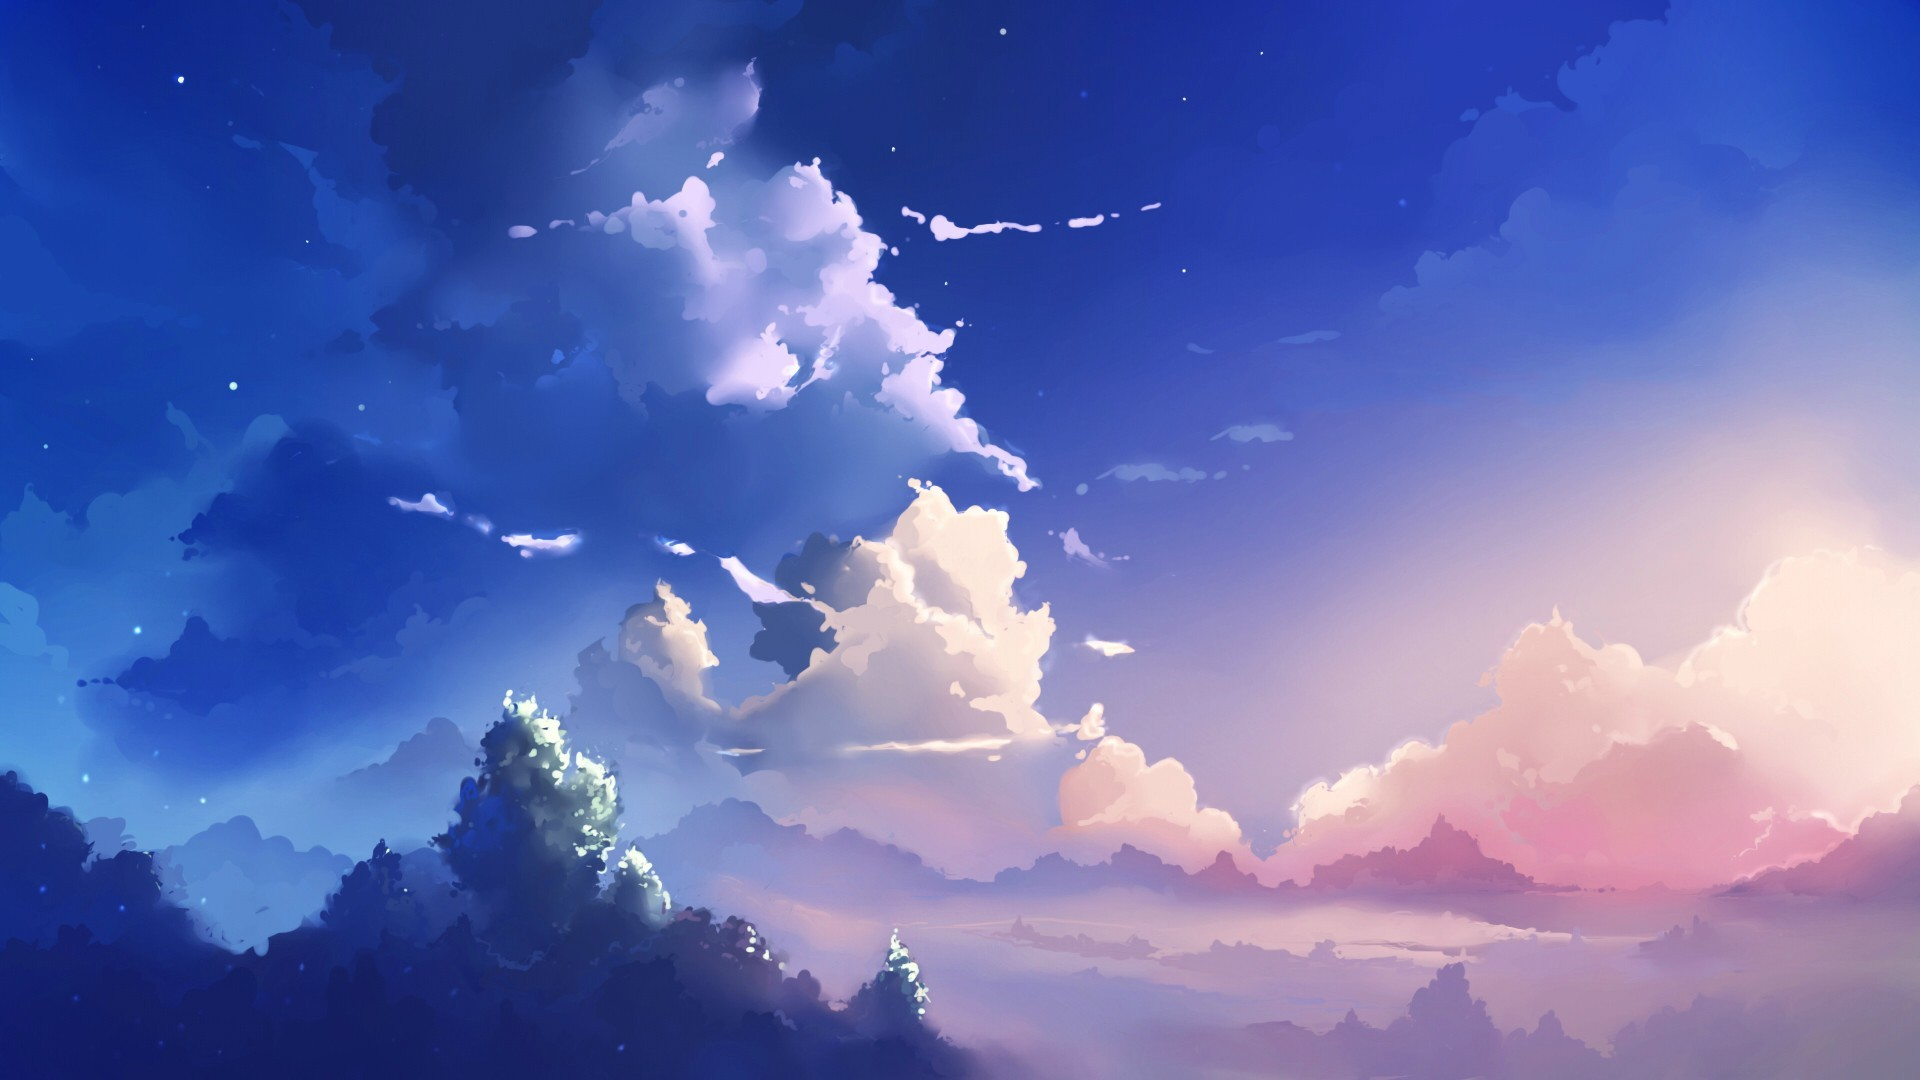 Anime 1920x1080 5 Centimeters Per Second anime pink peaceful artwork